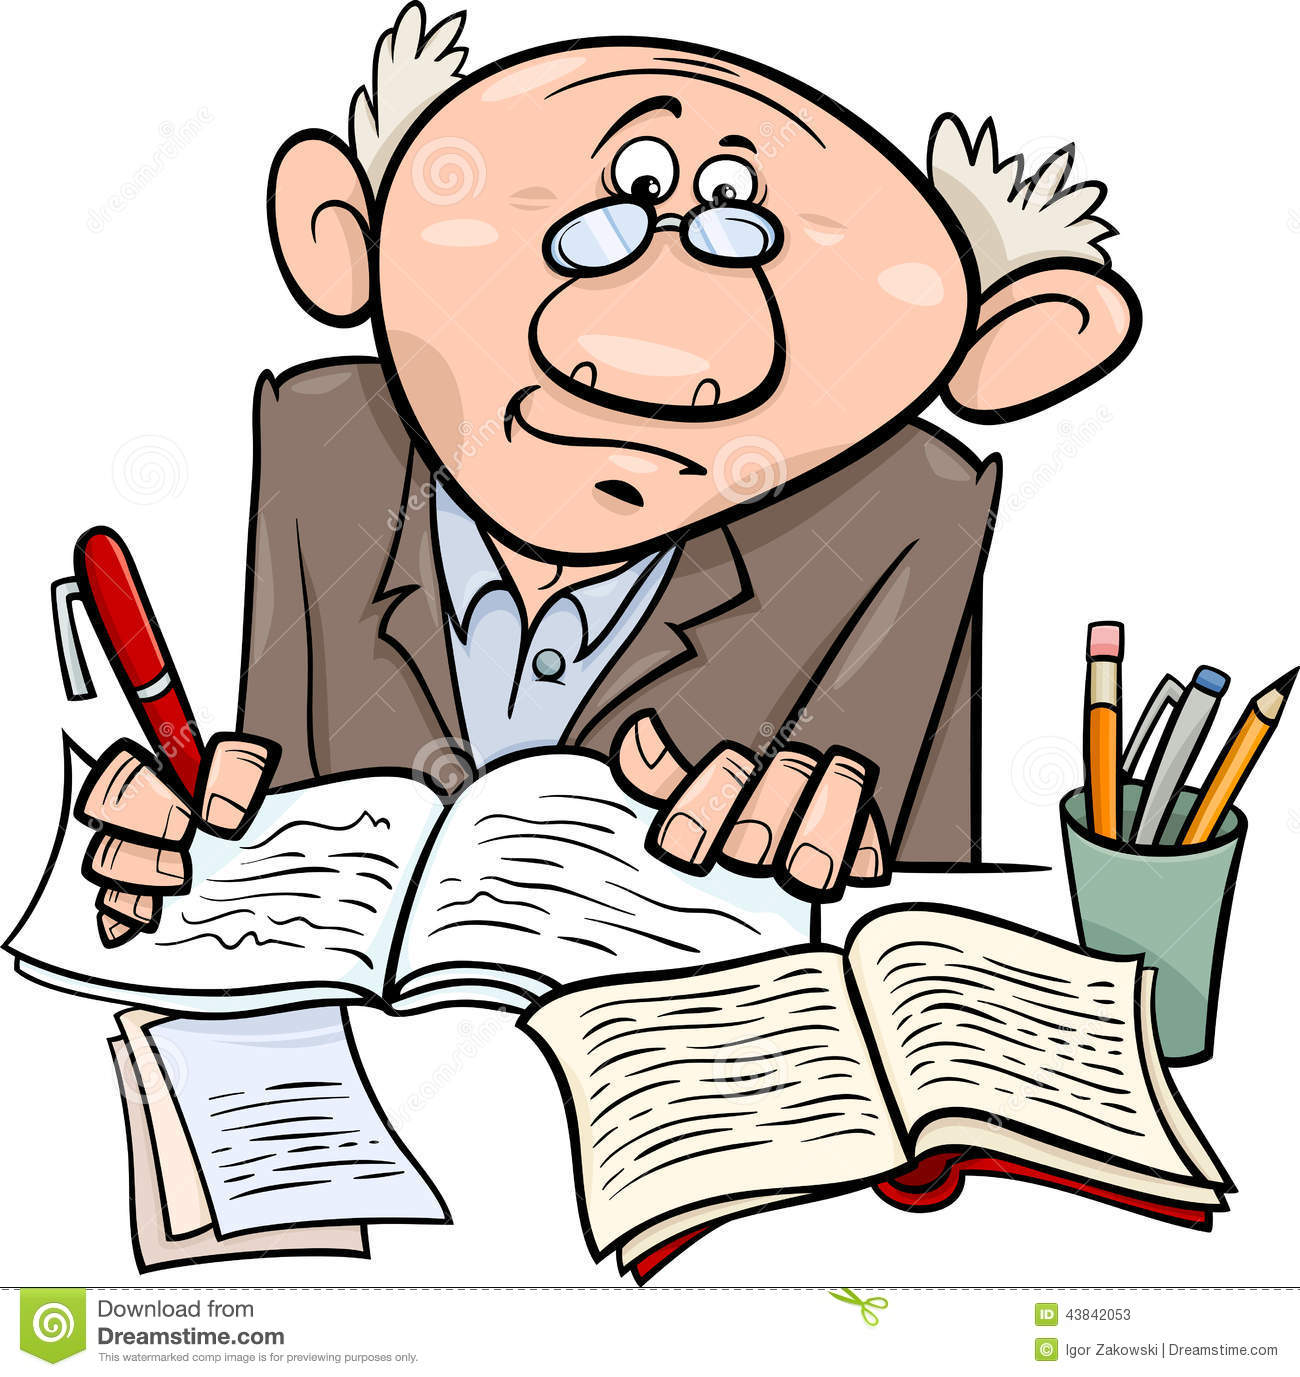 Image result for a cartoon picture of a writer